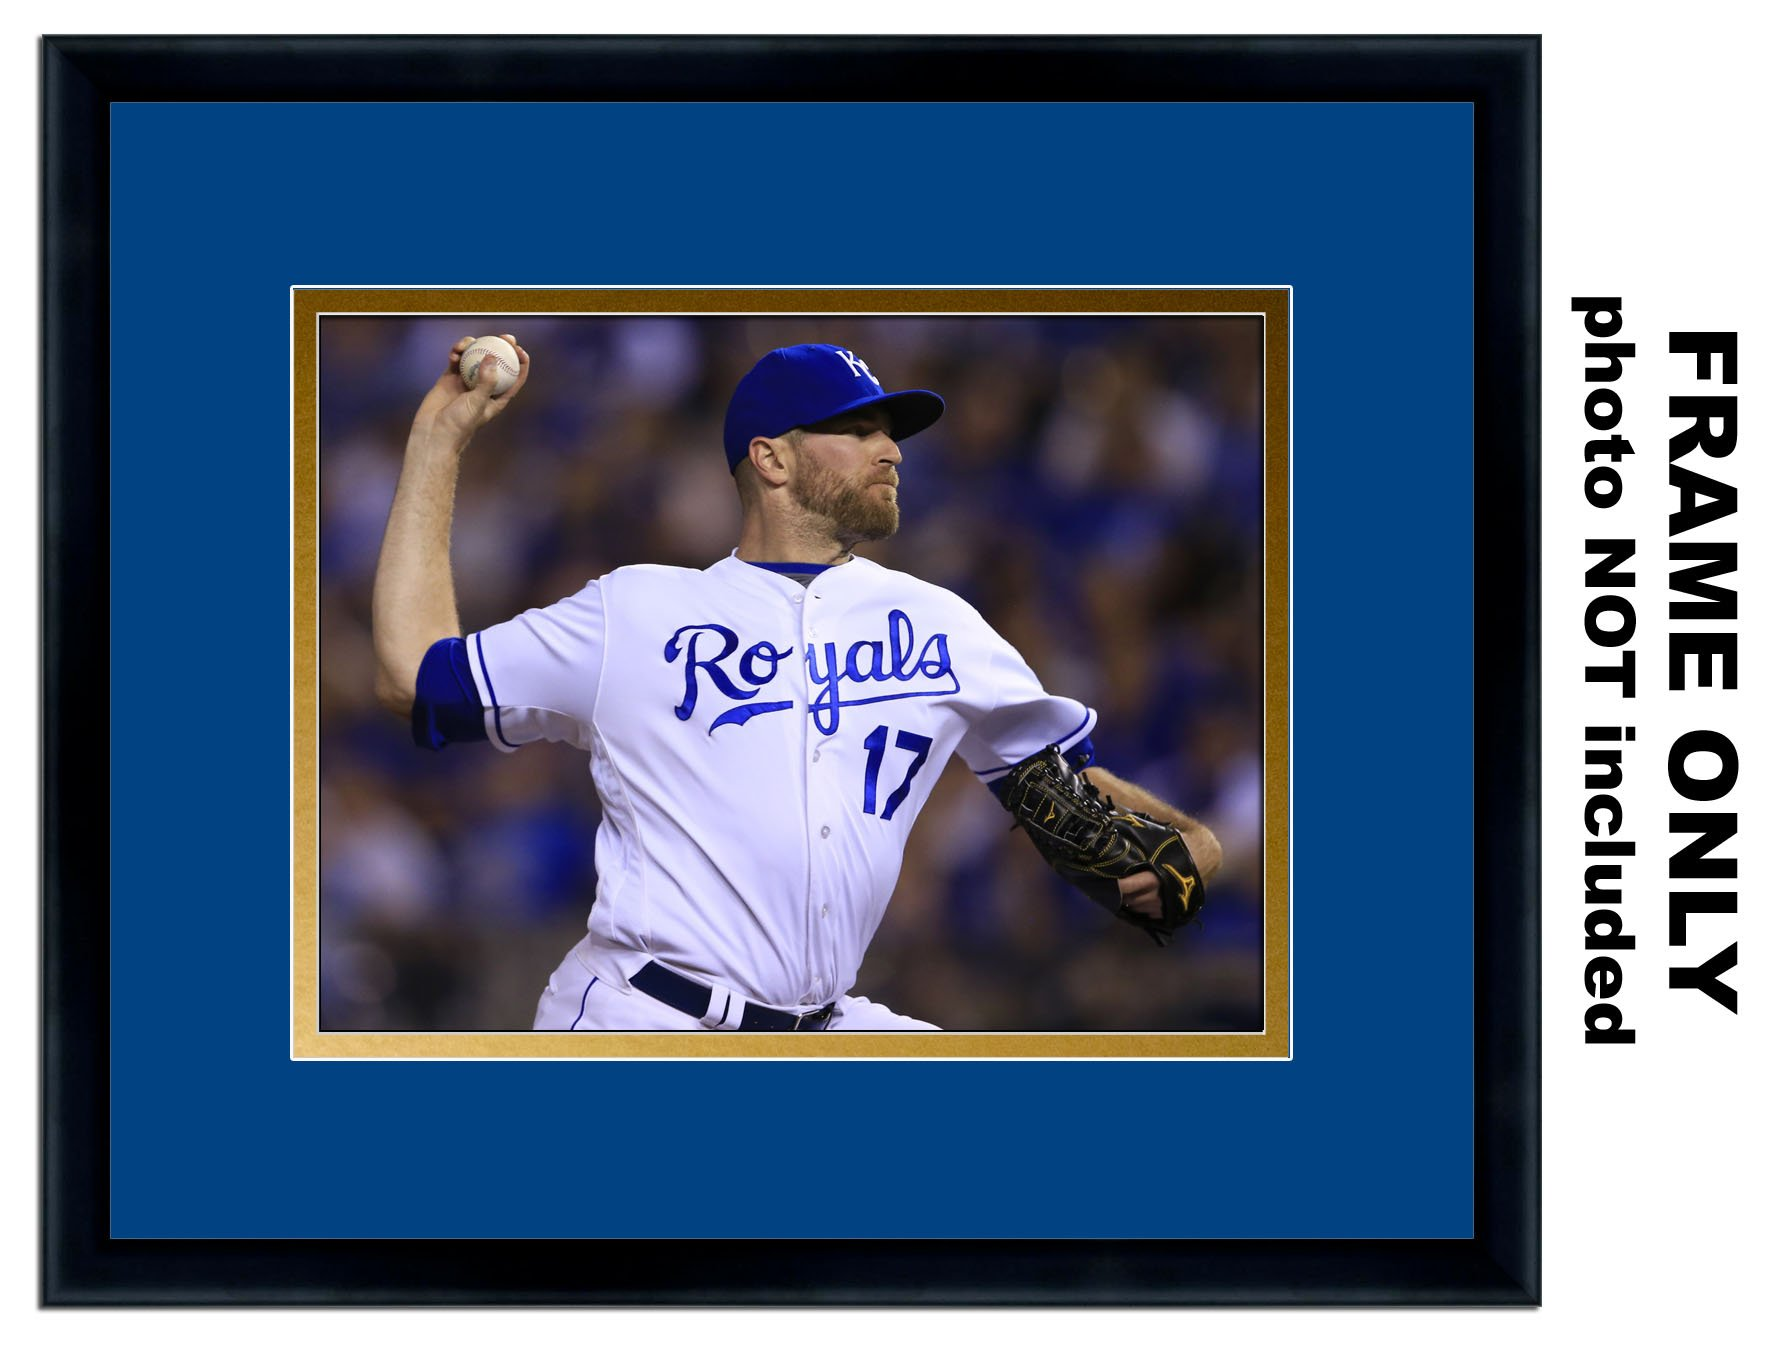 8x10 Photo Frame - with Kansas City Royals Colors Double Mat by The Kansas City Star